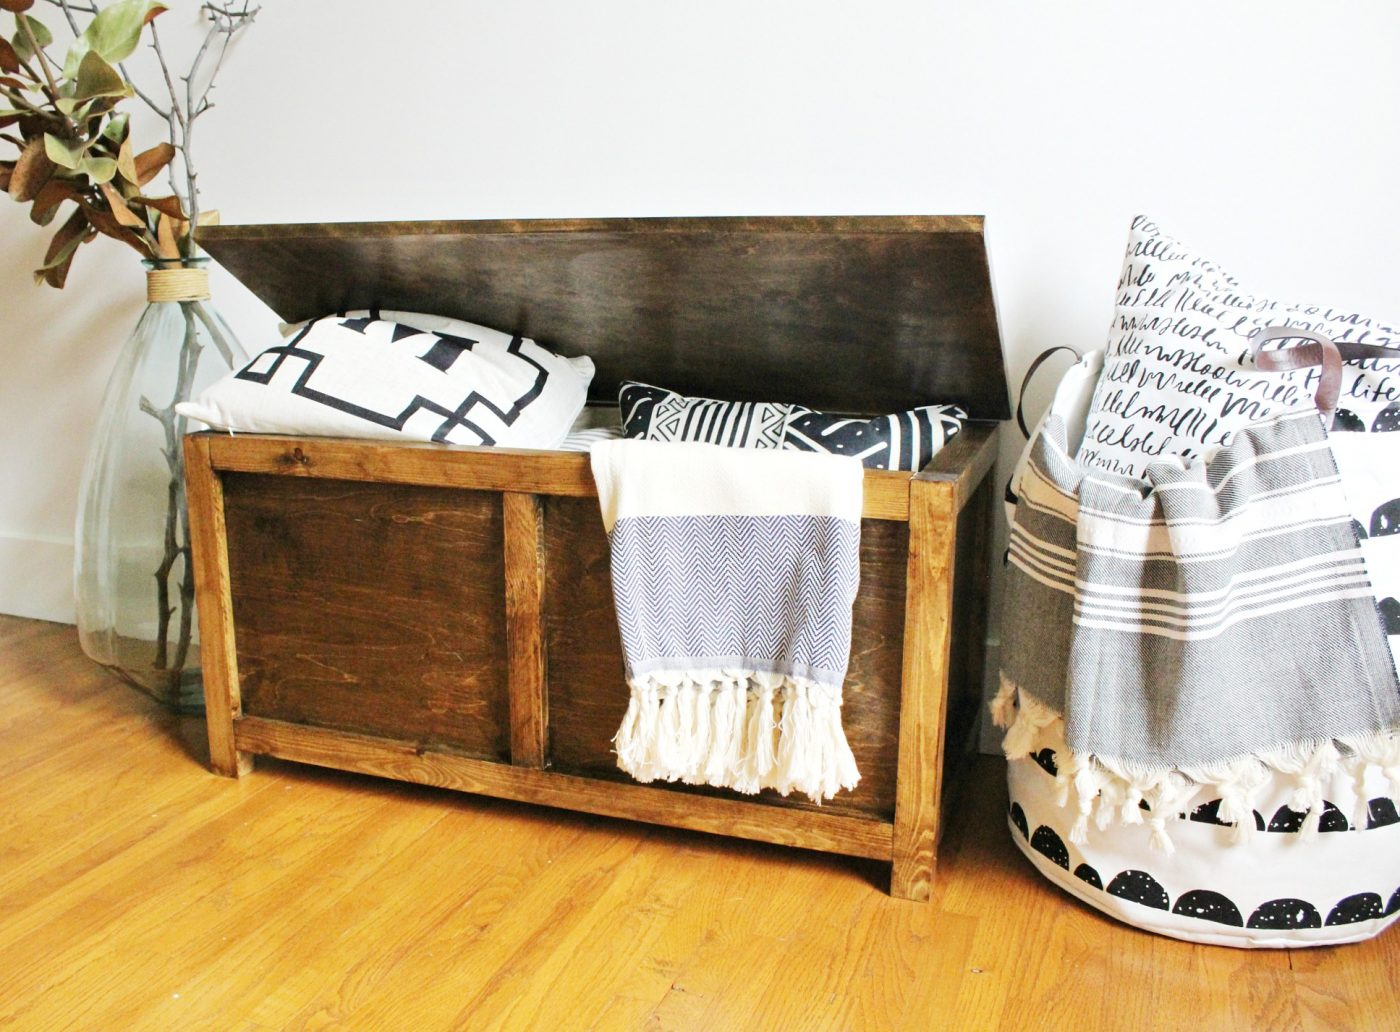 & How to Build a Simple DIY Storage Chest